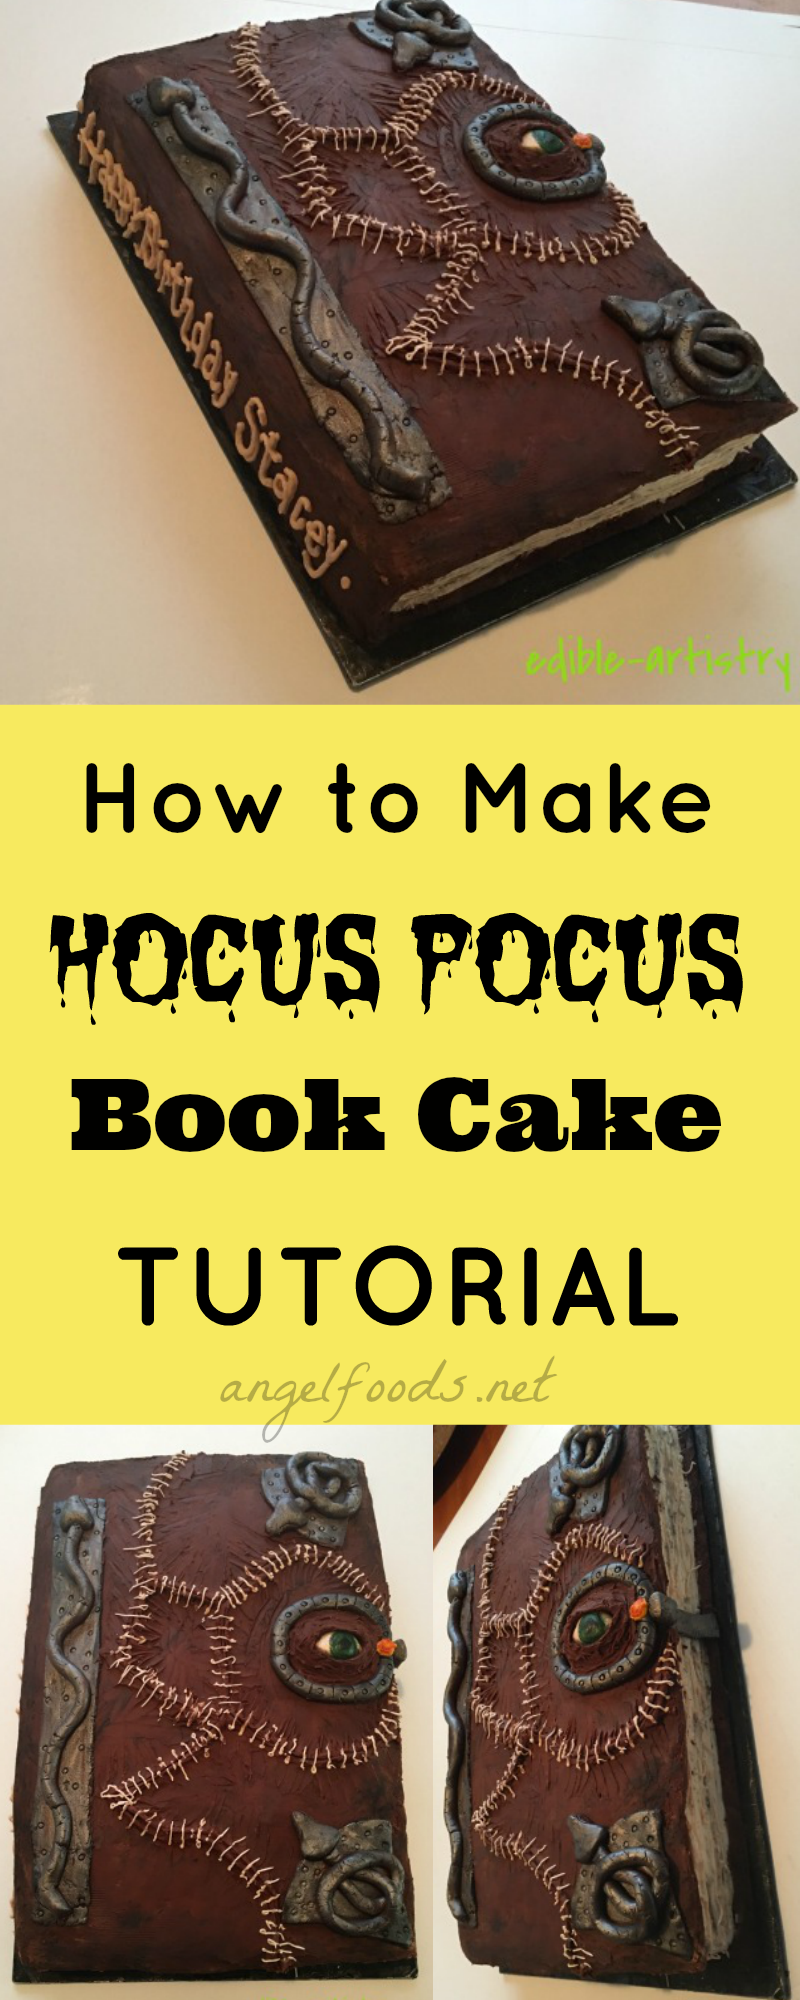 How To Decorate Hocus Pocus Book Cake Tutorial An Easy Cake Decorating Tutorial On How To Create Your Own Hocus Pocus Spell Book Replica In Cake You Can